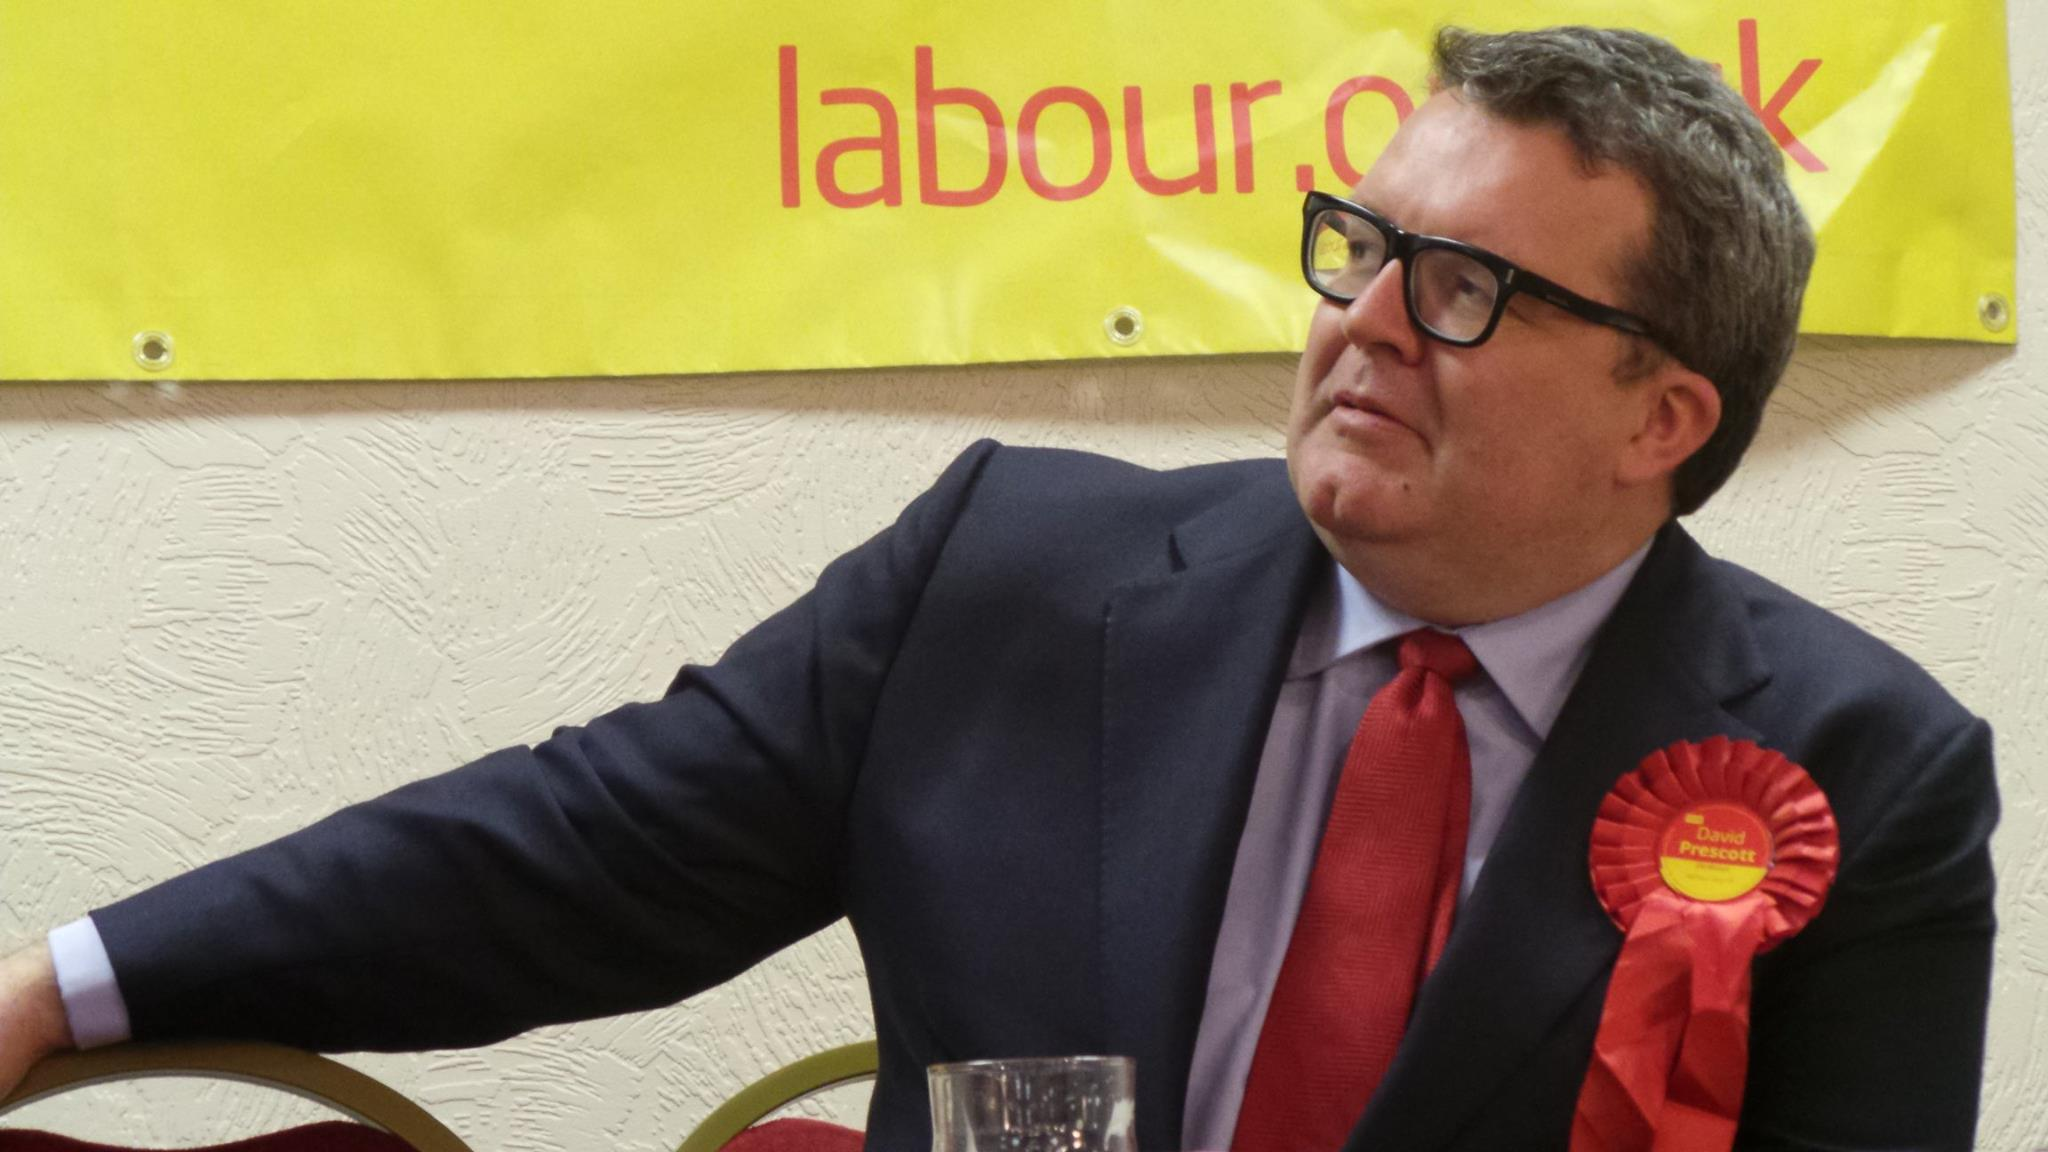 Tom Watson, a Brownite with ties to all Labour factions, could emerge as a caretaker leader. (Facebook)